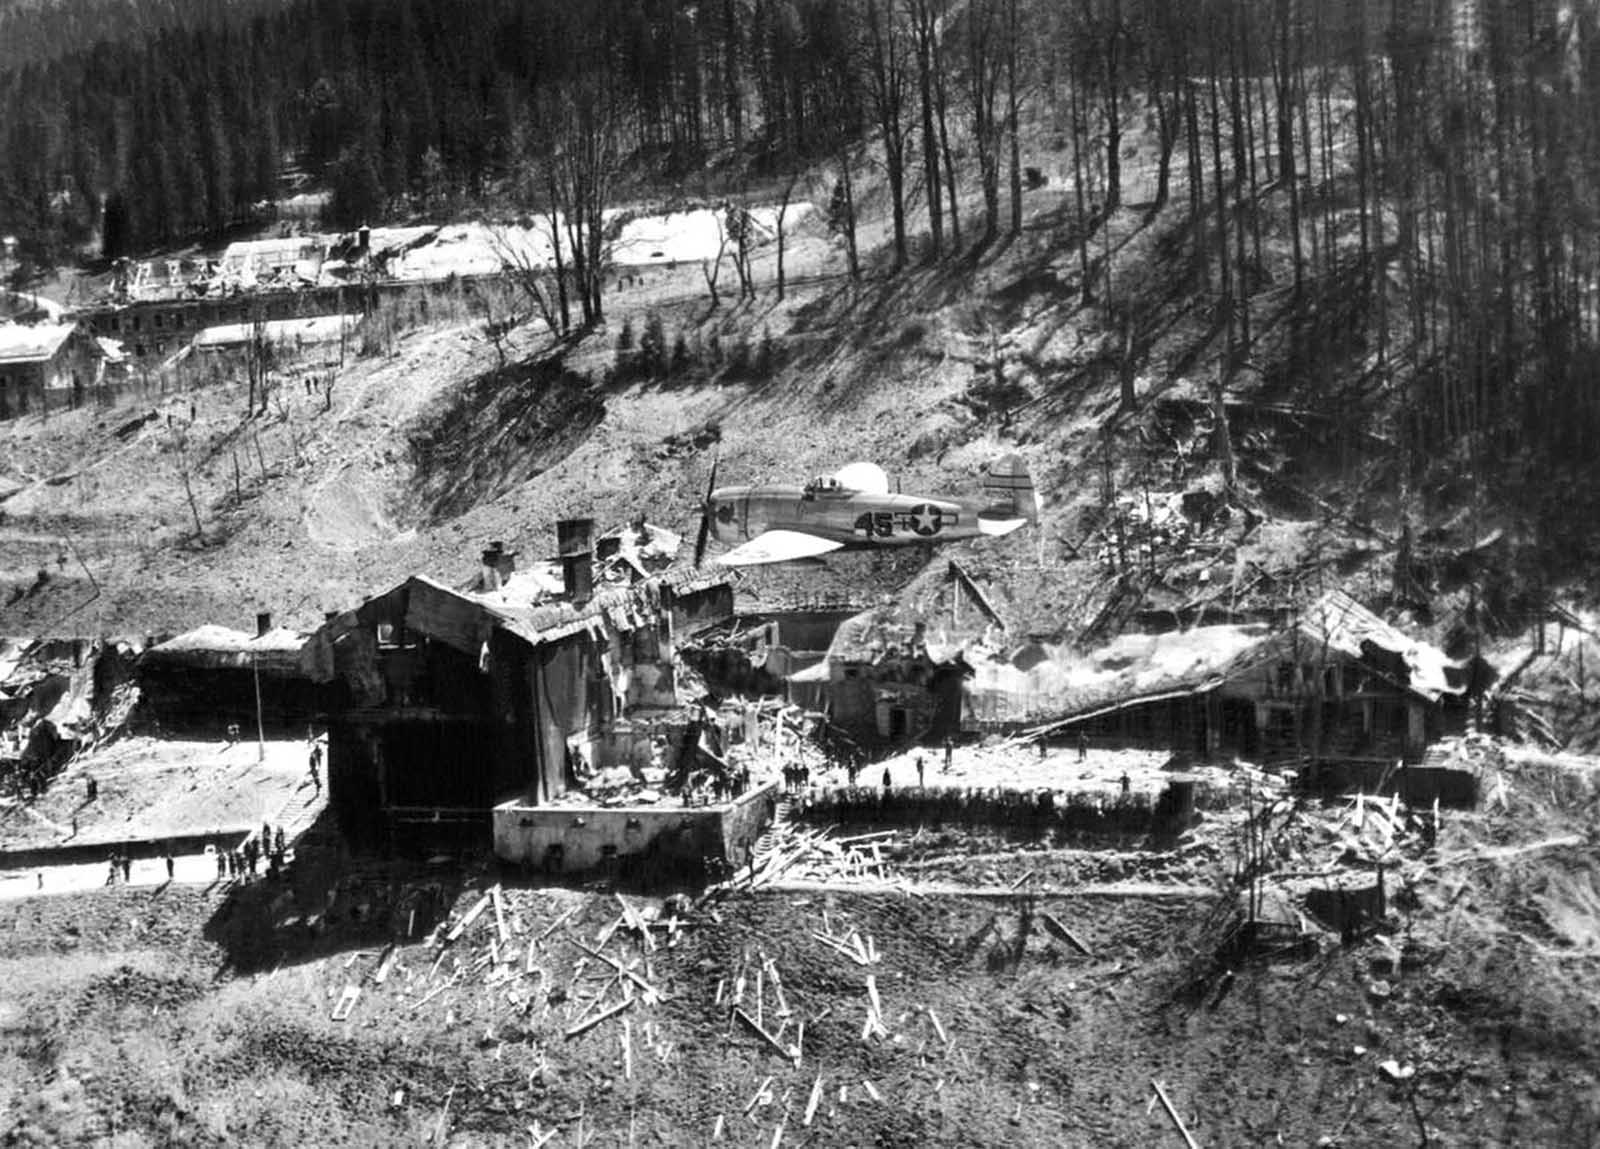 A P-47 Thunderbolt of the U.S. Army 12th Air Force flies low over the crumbled ruins of what once was Hitler's retreat at Berchtesgaden, Germany, on May 26, 1945. Small and large bomb craters dot the grounds around the wreckage.